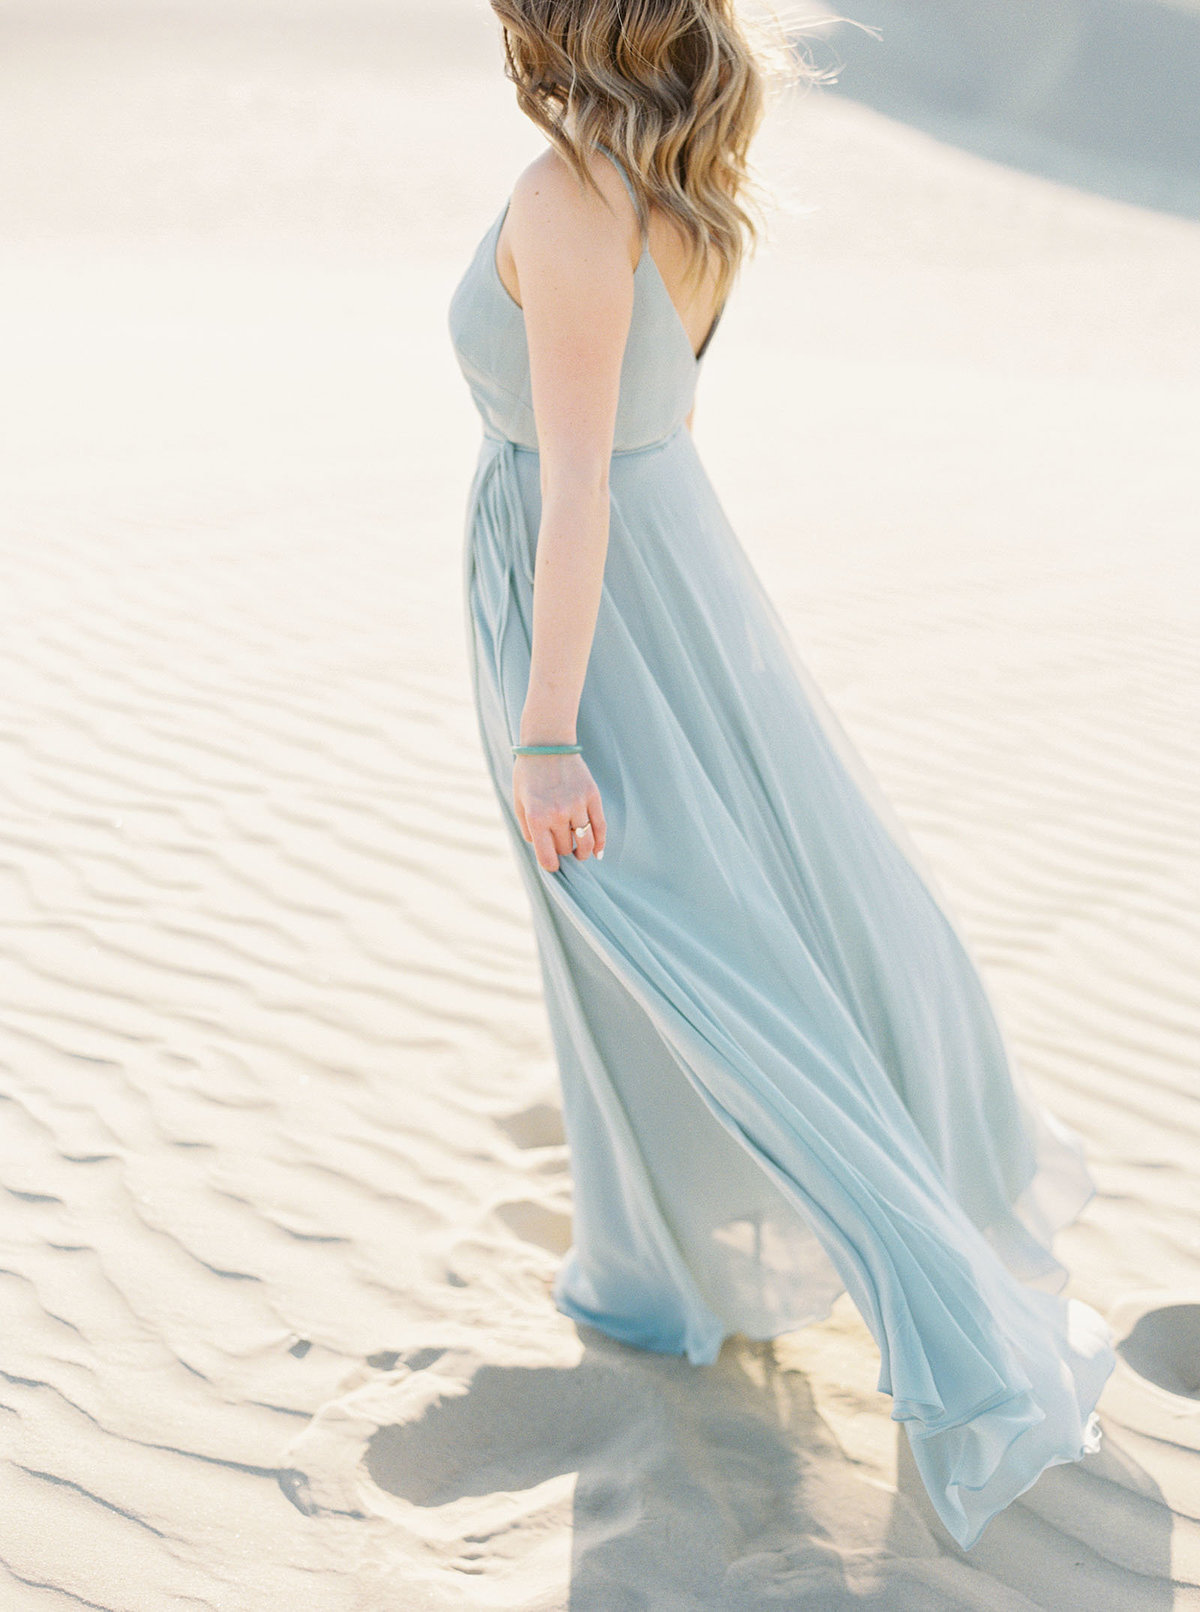 sand-dune-engagement-photos-9